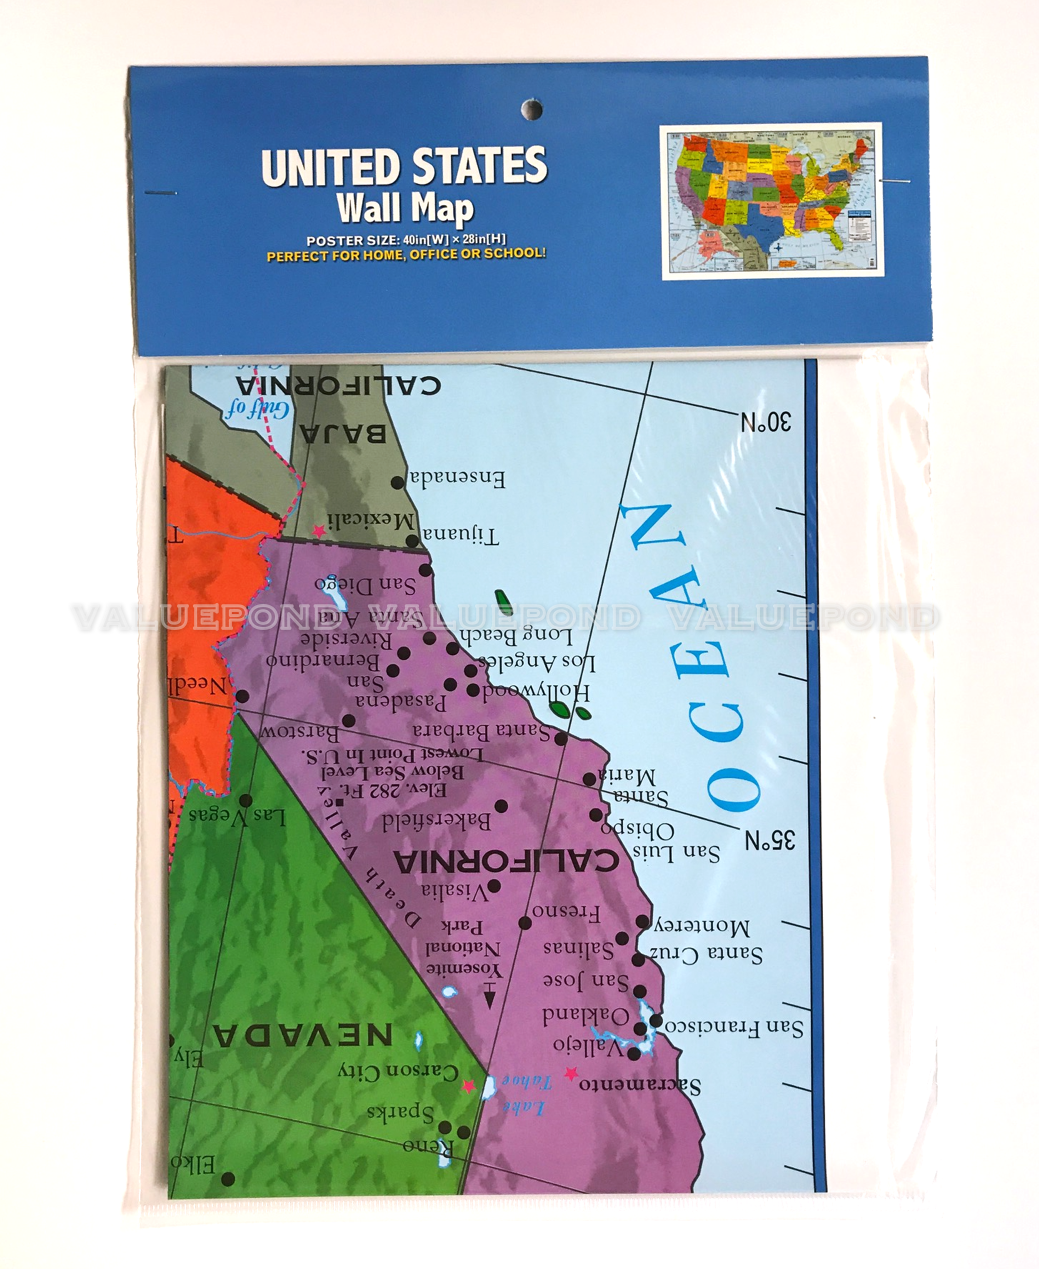 USA US MAP Poster Size Wall Decoration Large MAP of United States 40